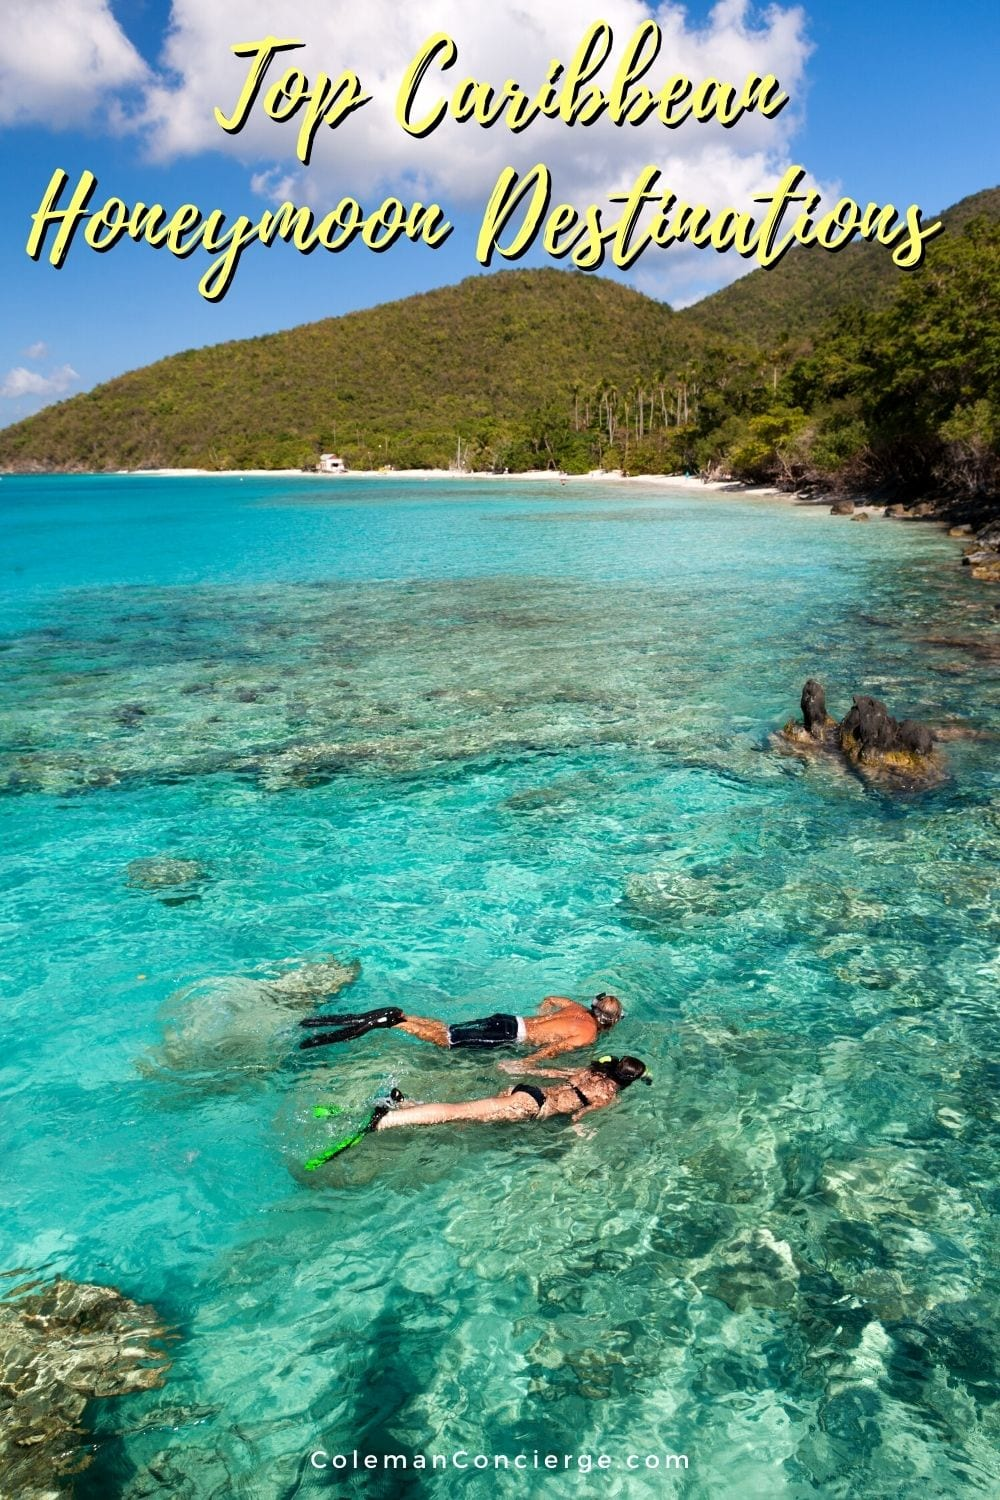 Couple snorkeling in the Caribbean